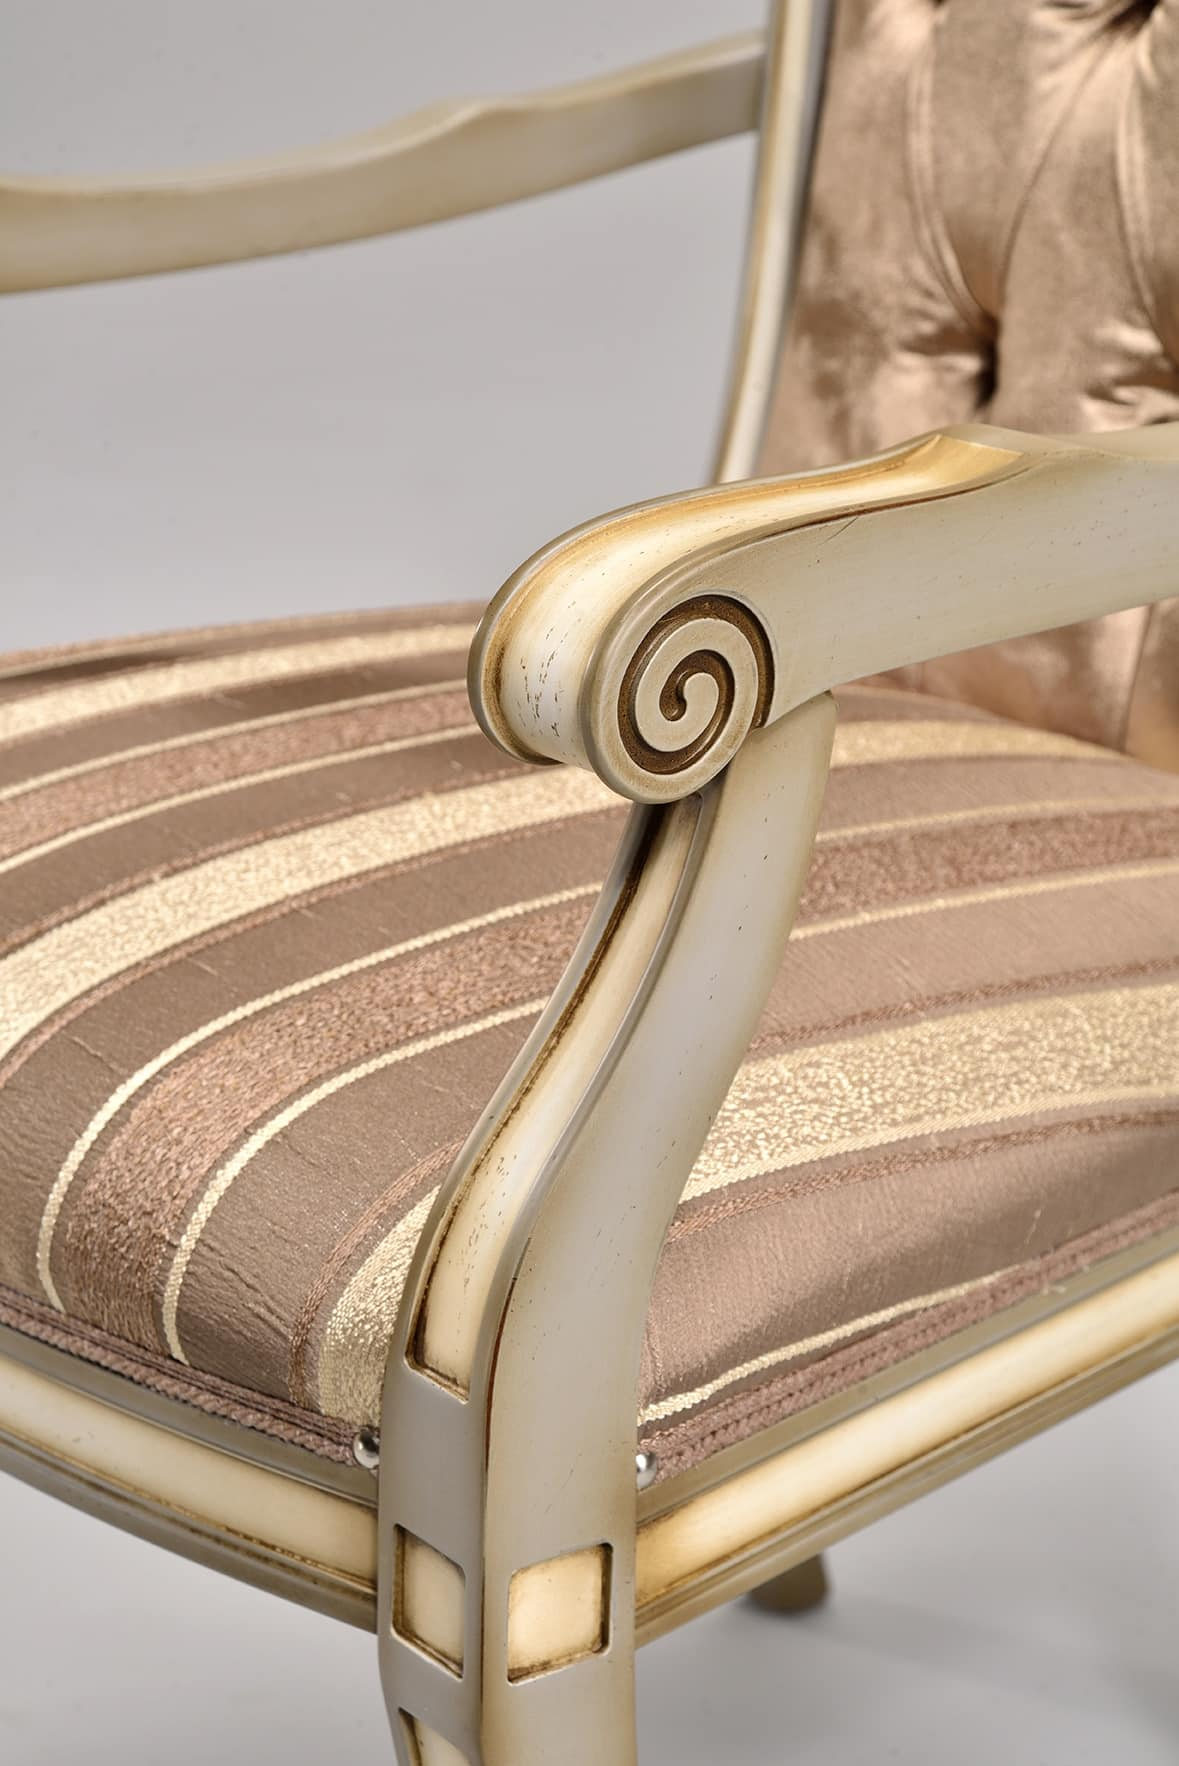 LUCREZIA chair with armrests 8220A, Classic chair in beech, various colors, for the bedroom